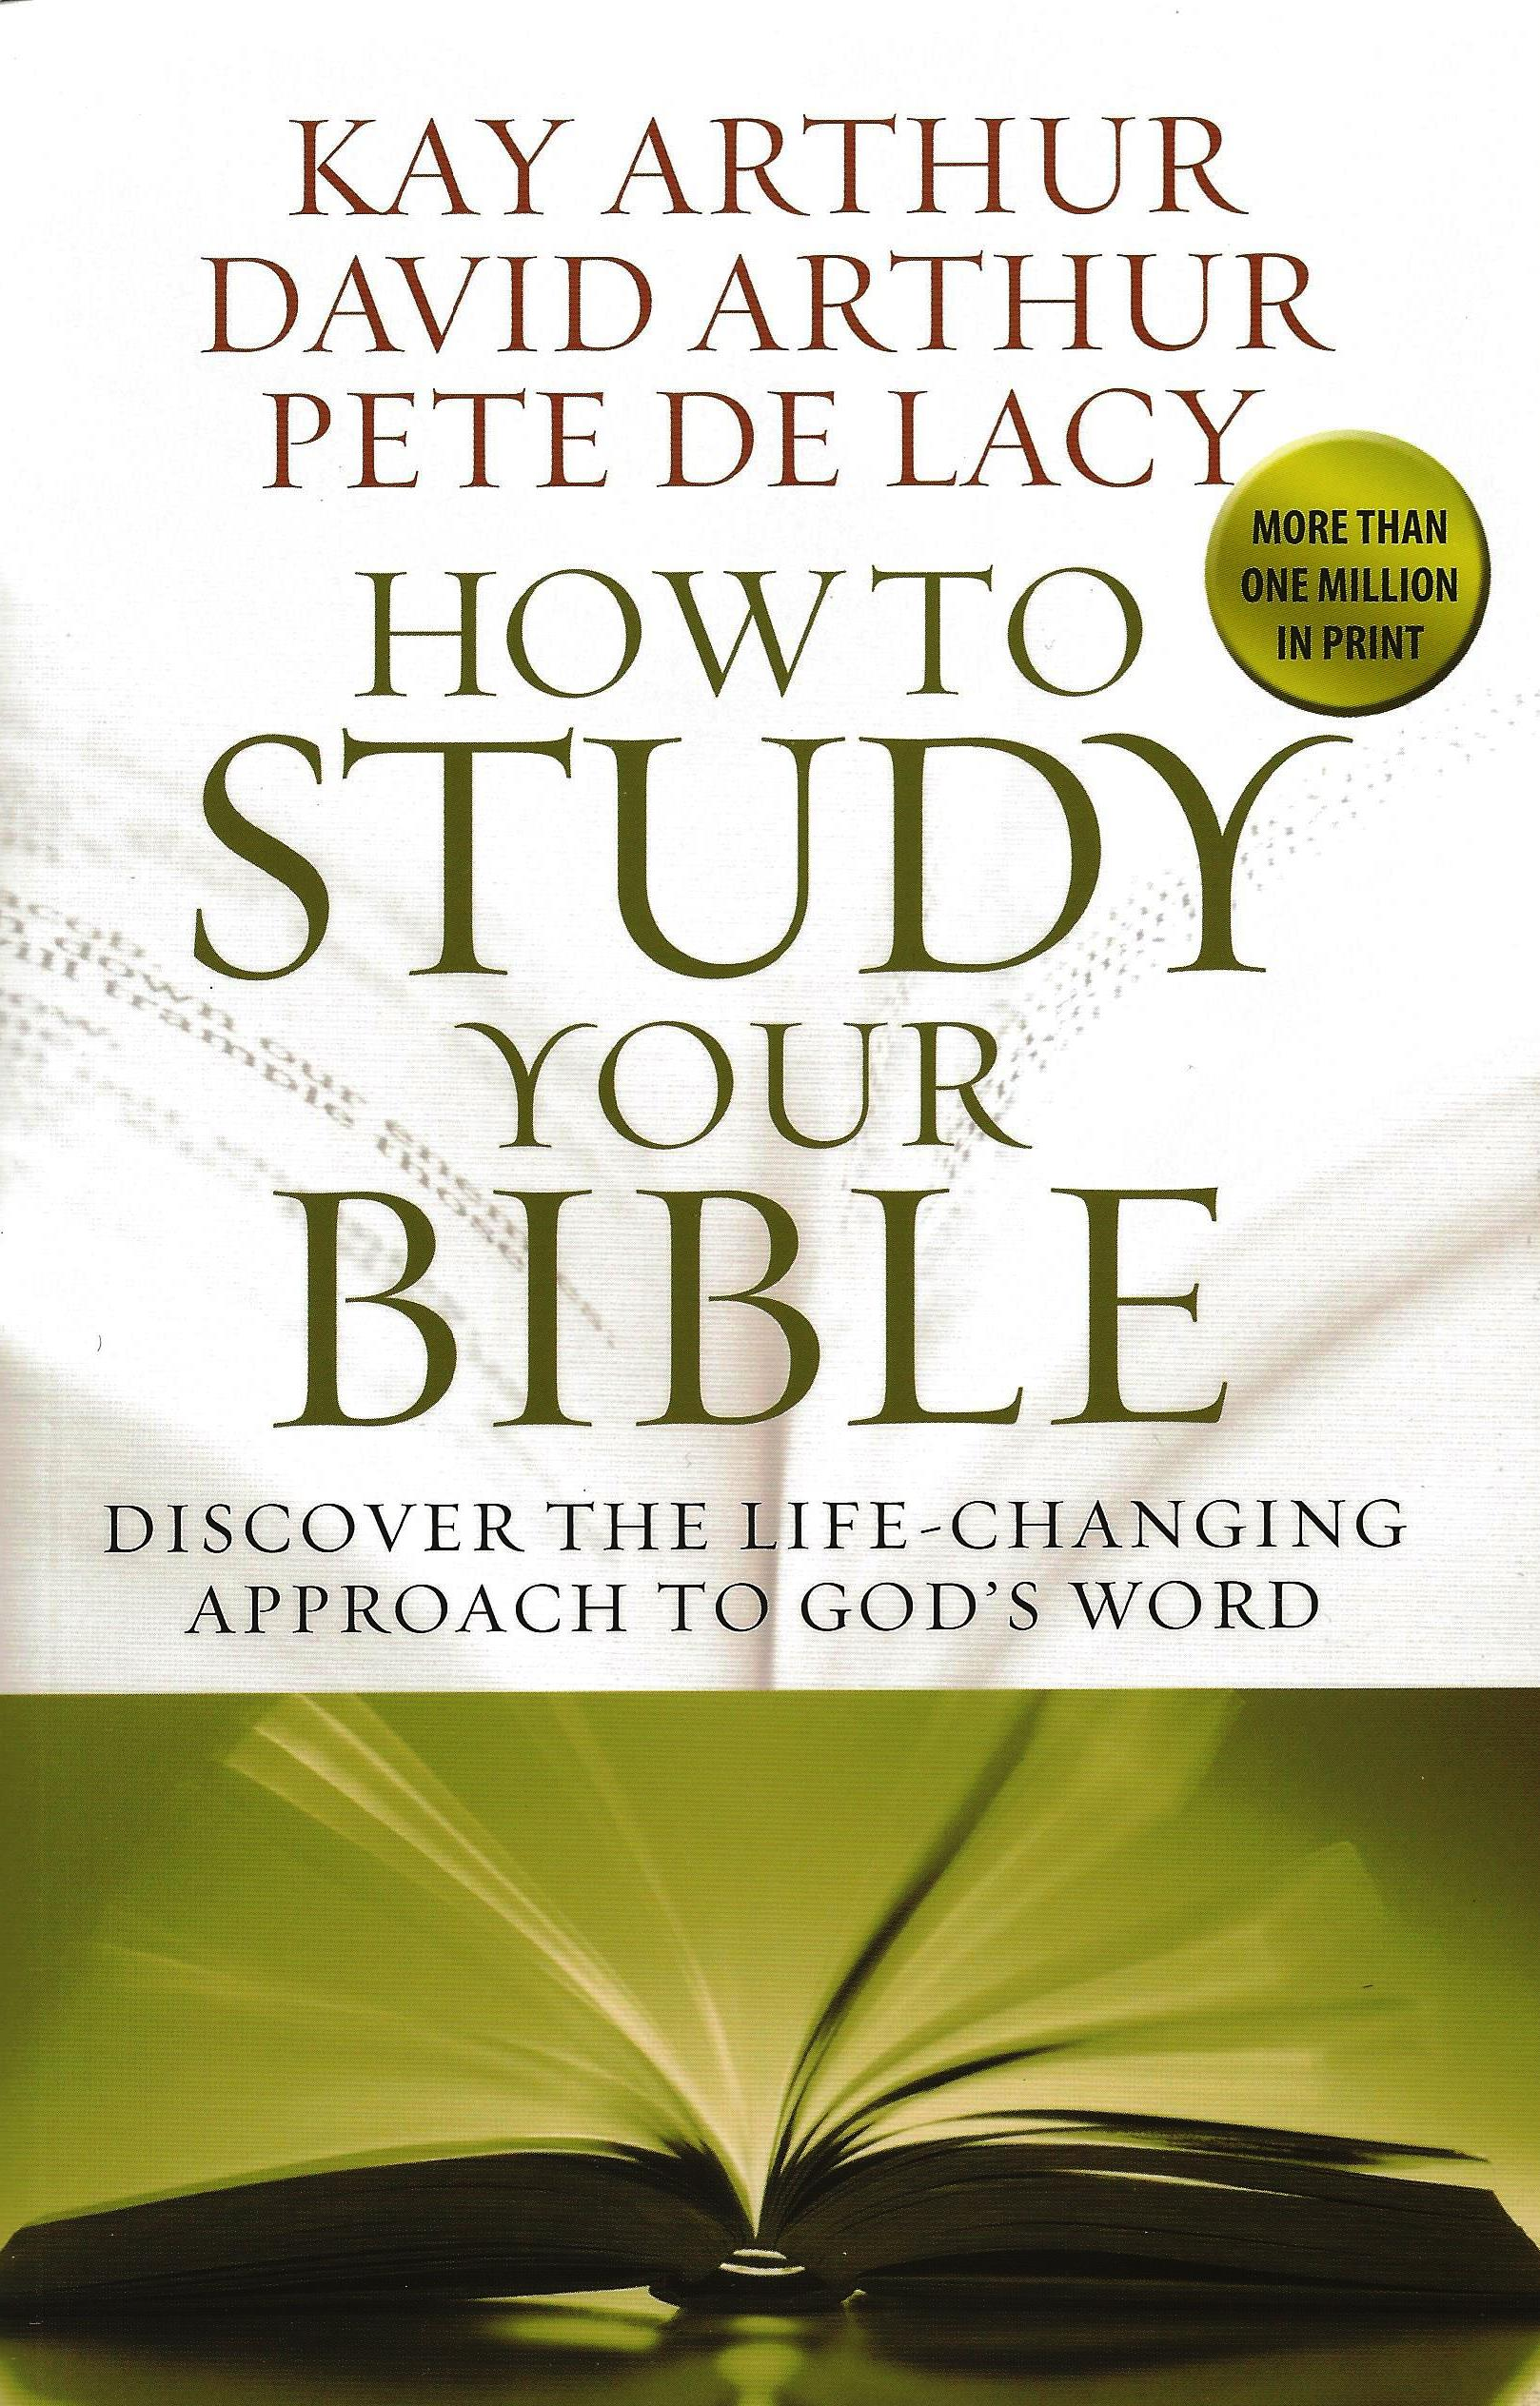 THE NEW HOW TO STUDY YOUR BIBLE Kay Arthur